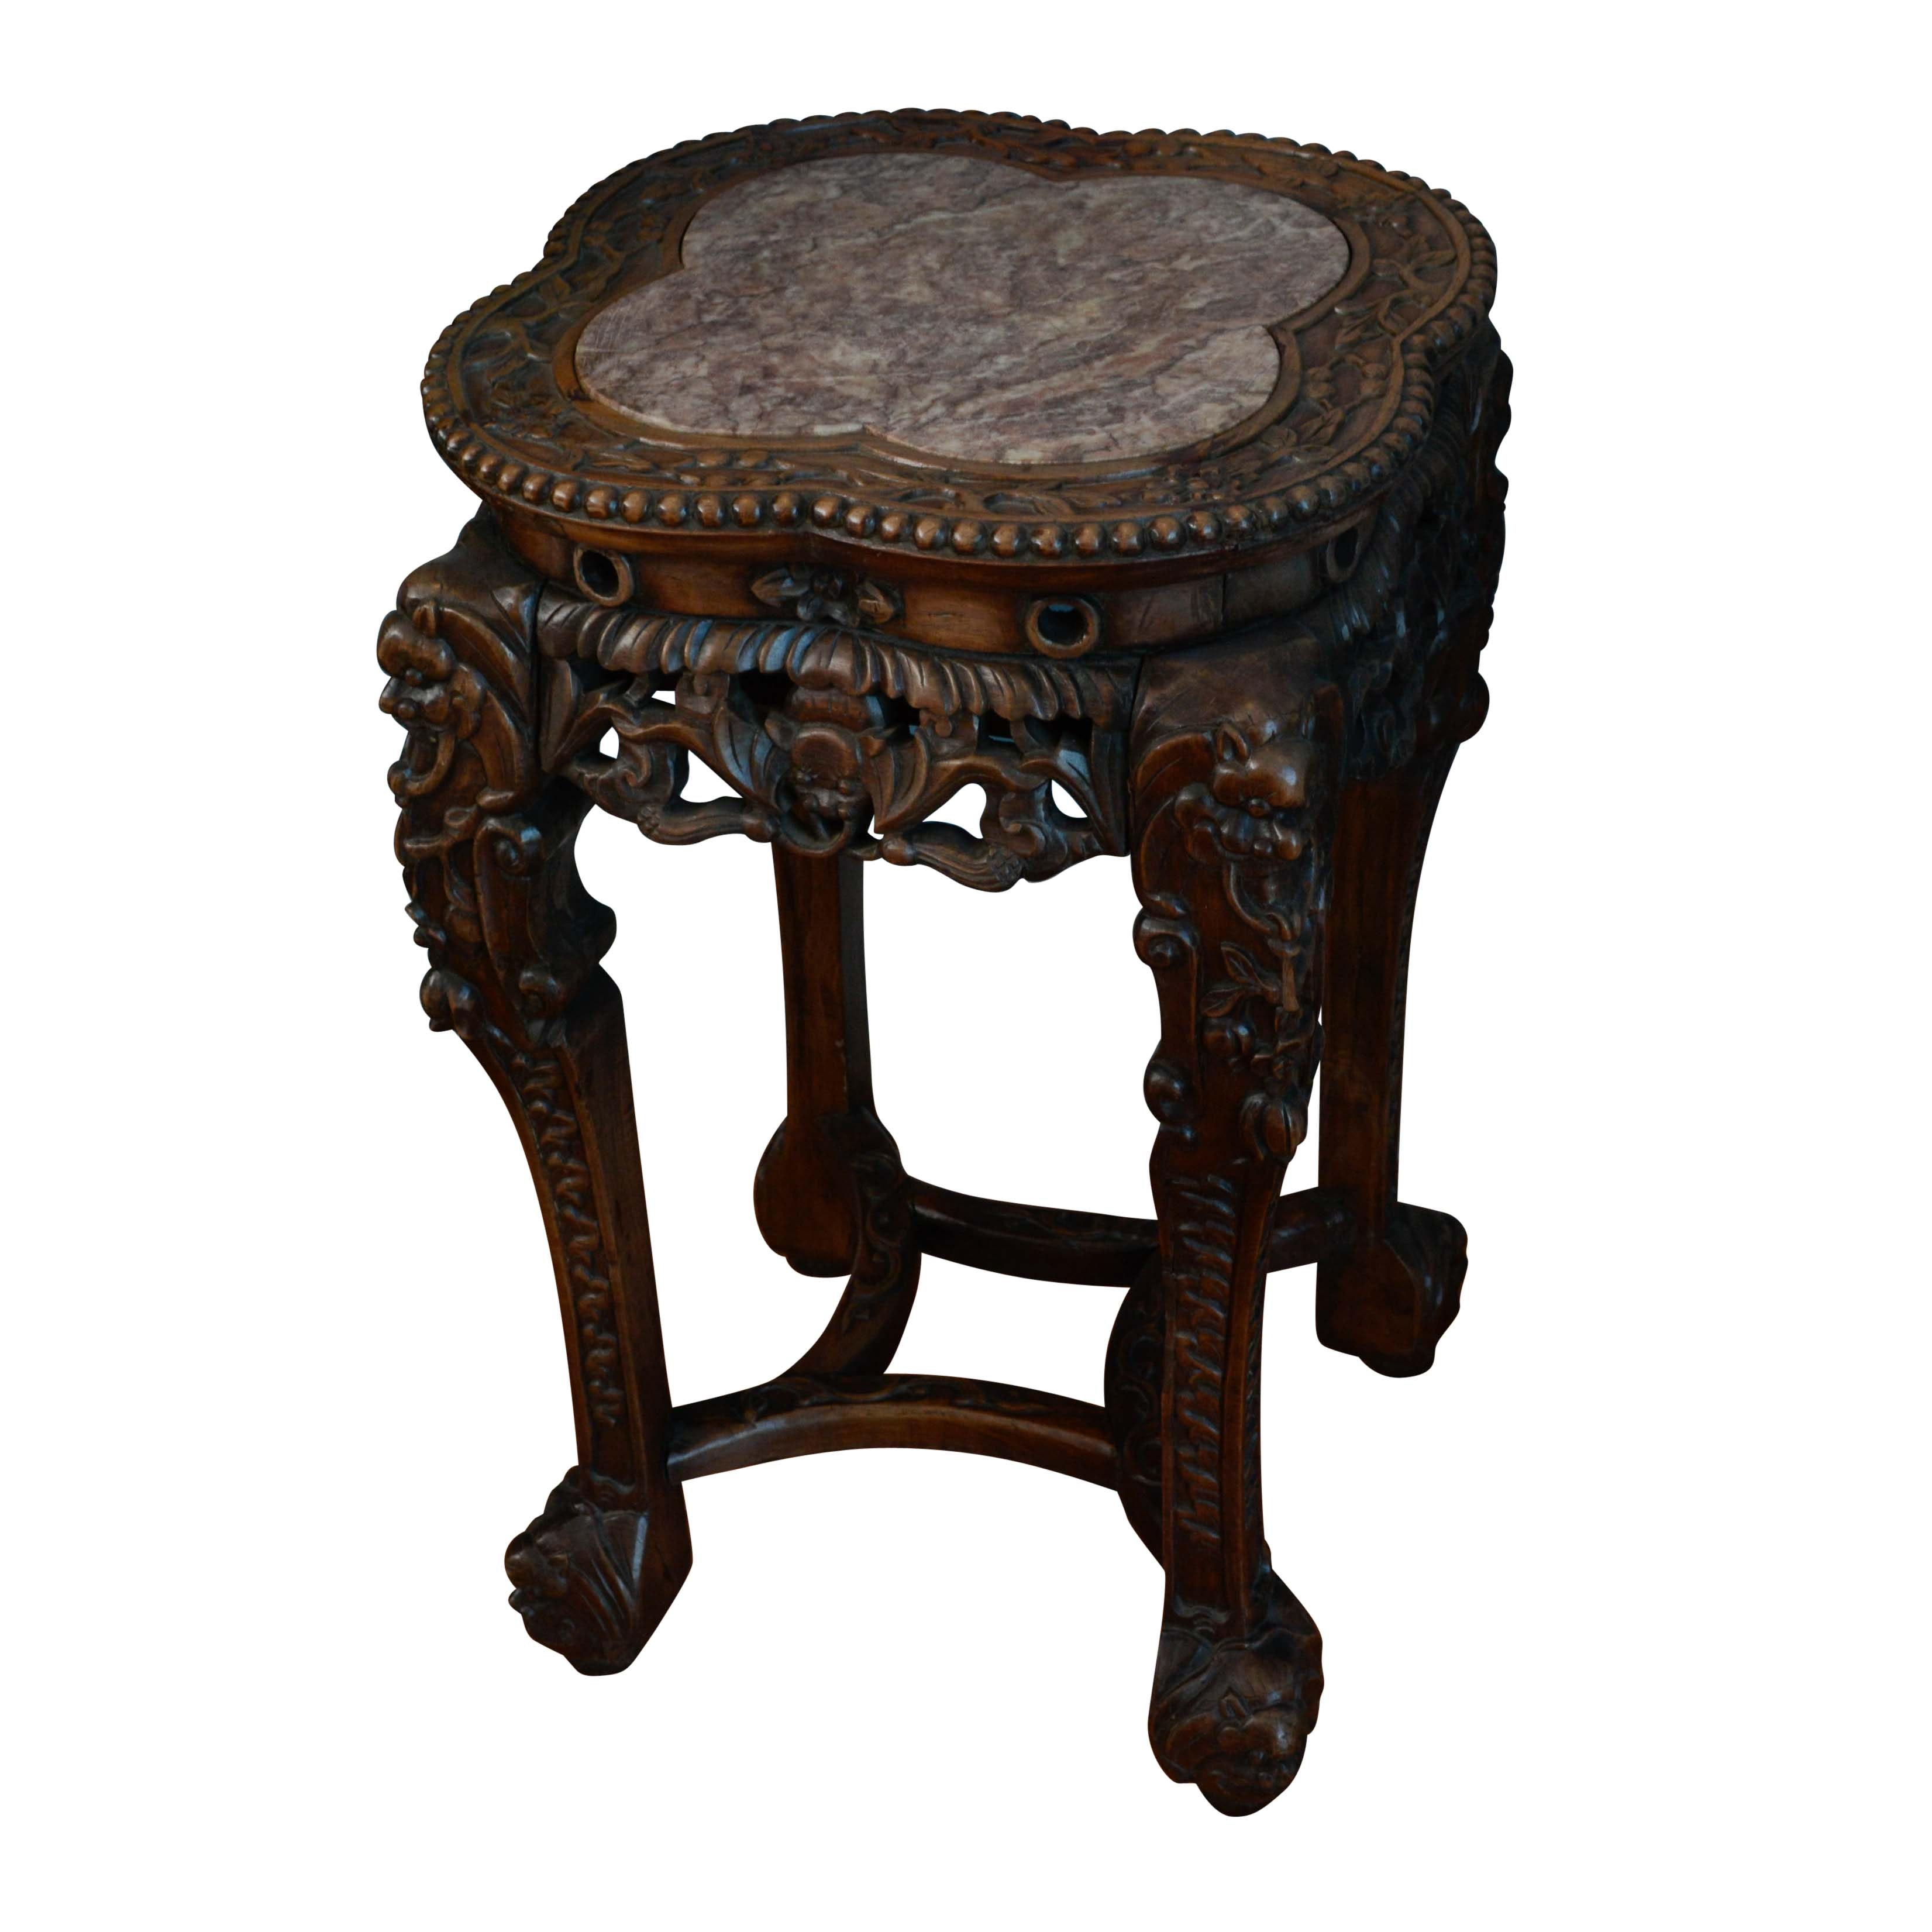 Ornate Carved Quatrefoil Marble Top Accent Table